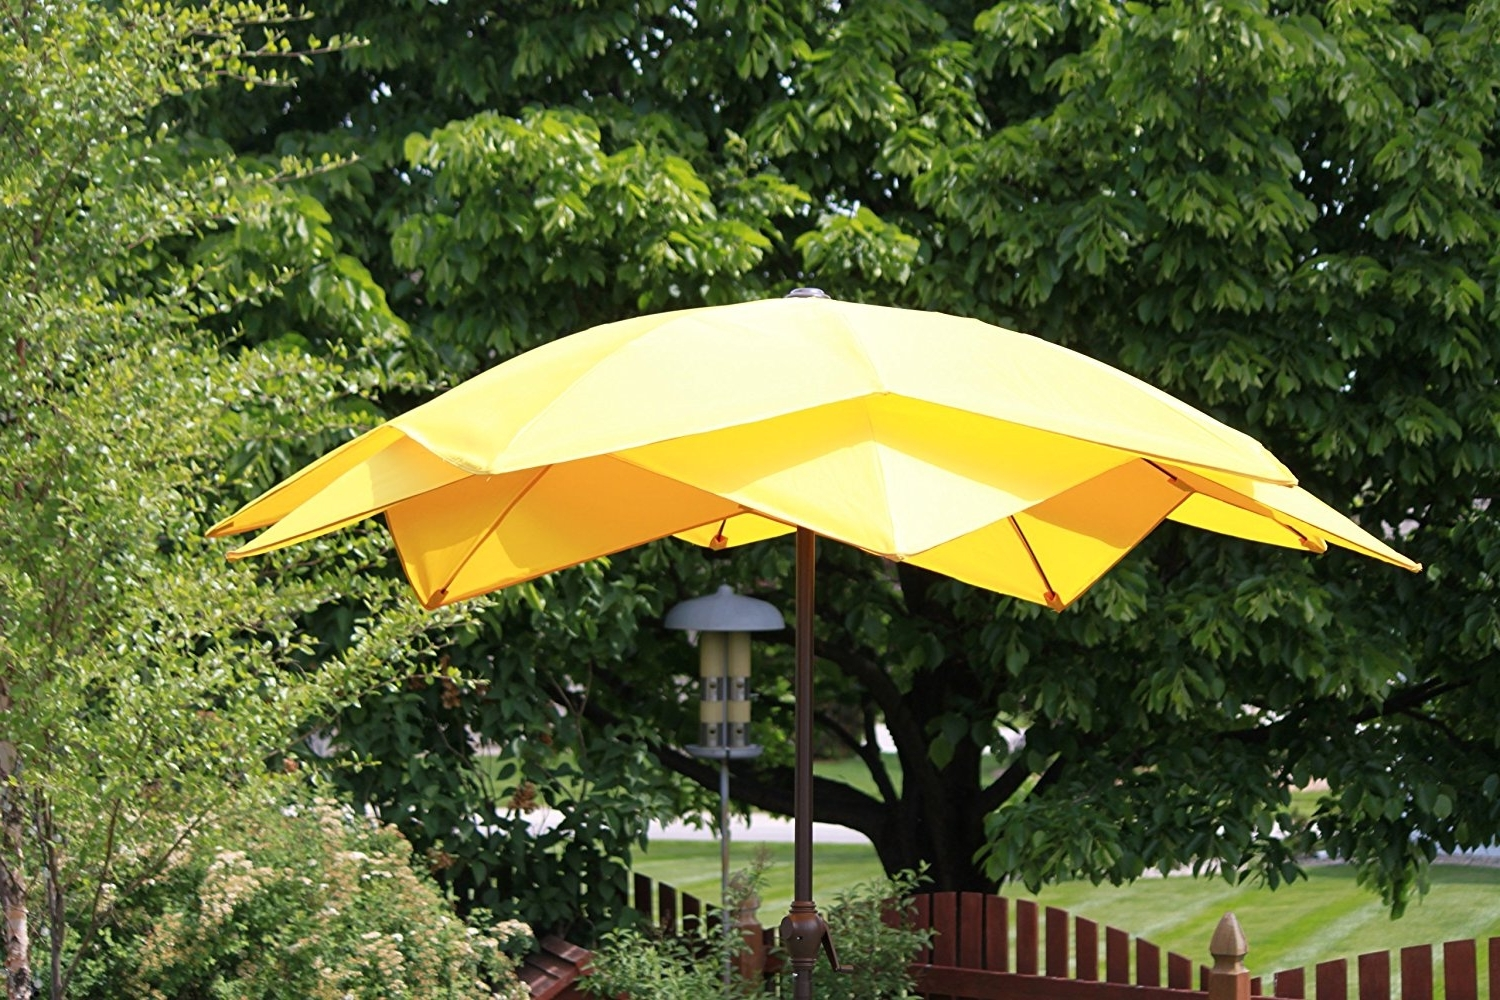 Elegant Wind Resistant Patio Umbrella Uk F36x On Most Luxury Small Throughout Preferred Patio Umbrellas For Windy Locations (View 8 of 20)